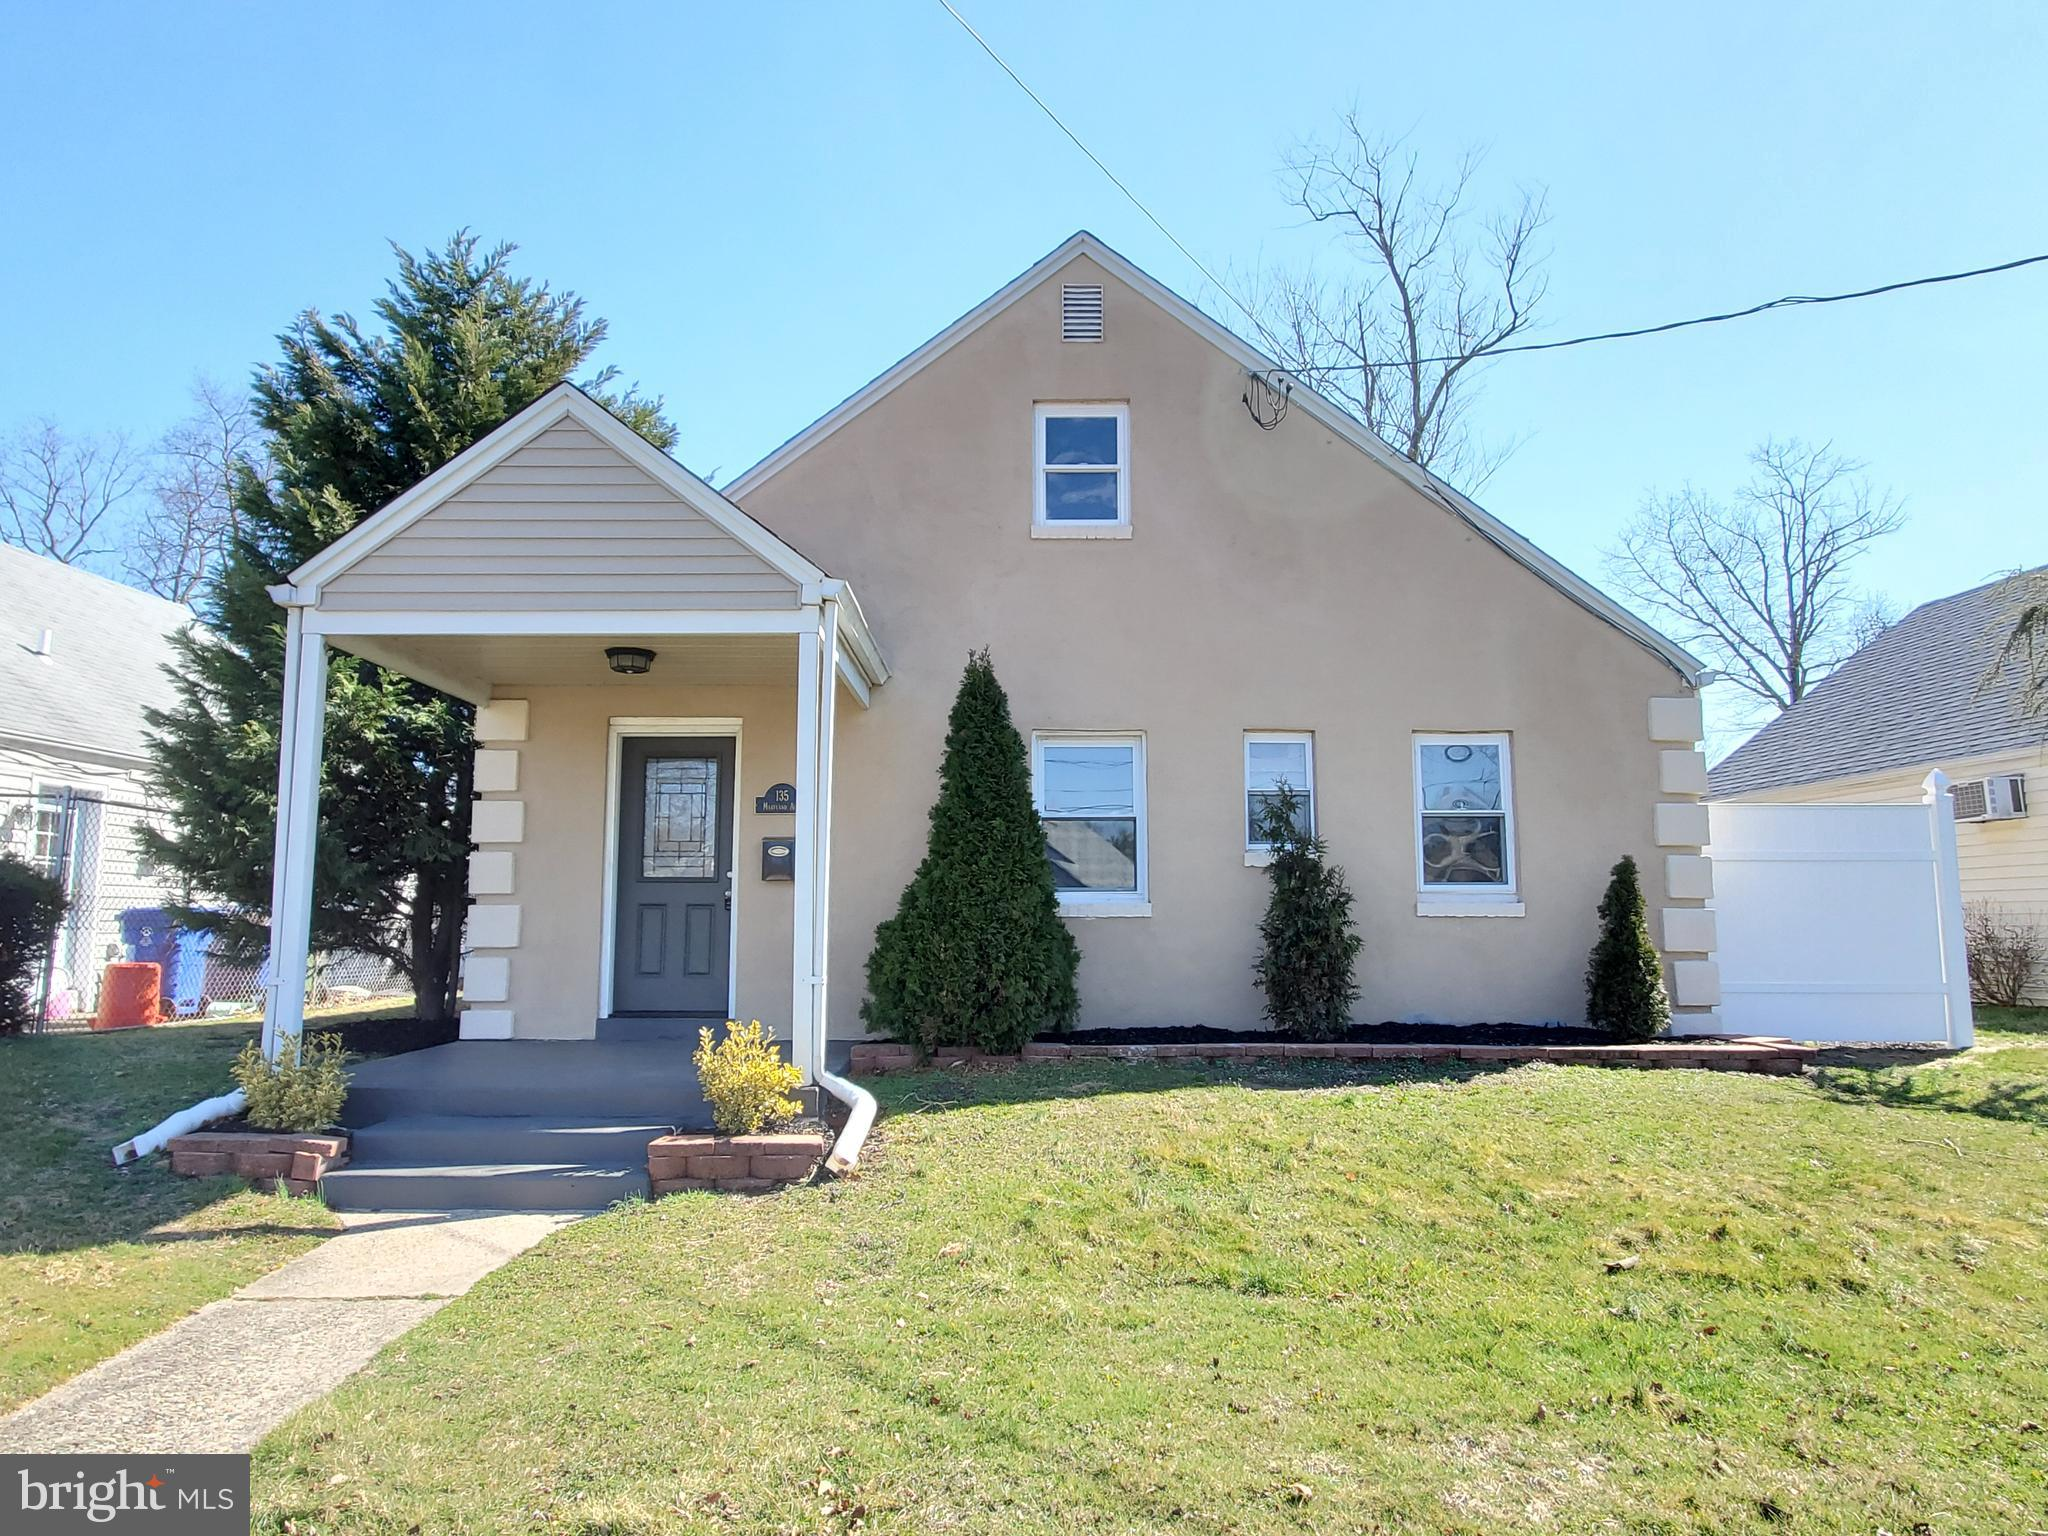 This 4 bedroom 1 bath Cape Cod house is ready and waiting for you! Located only a few blocks from th